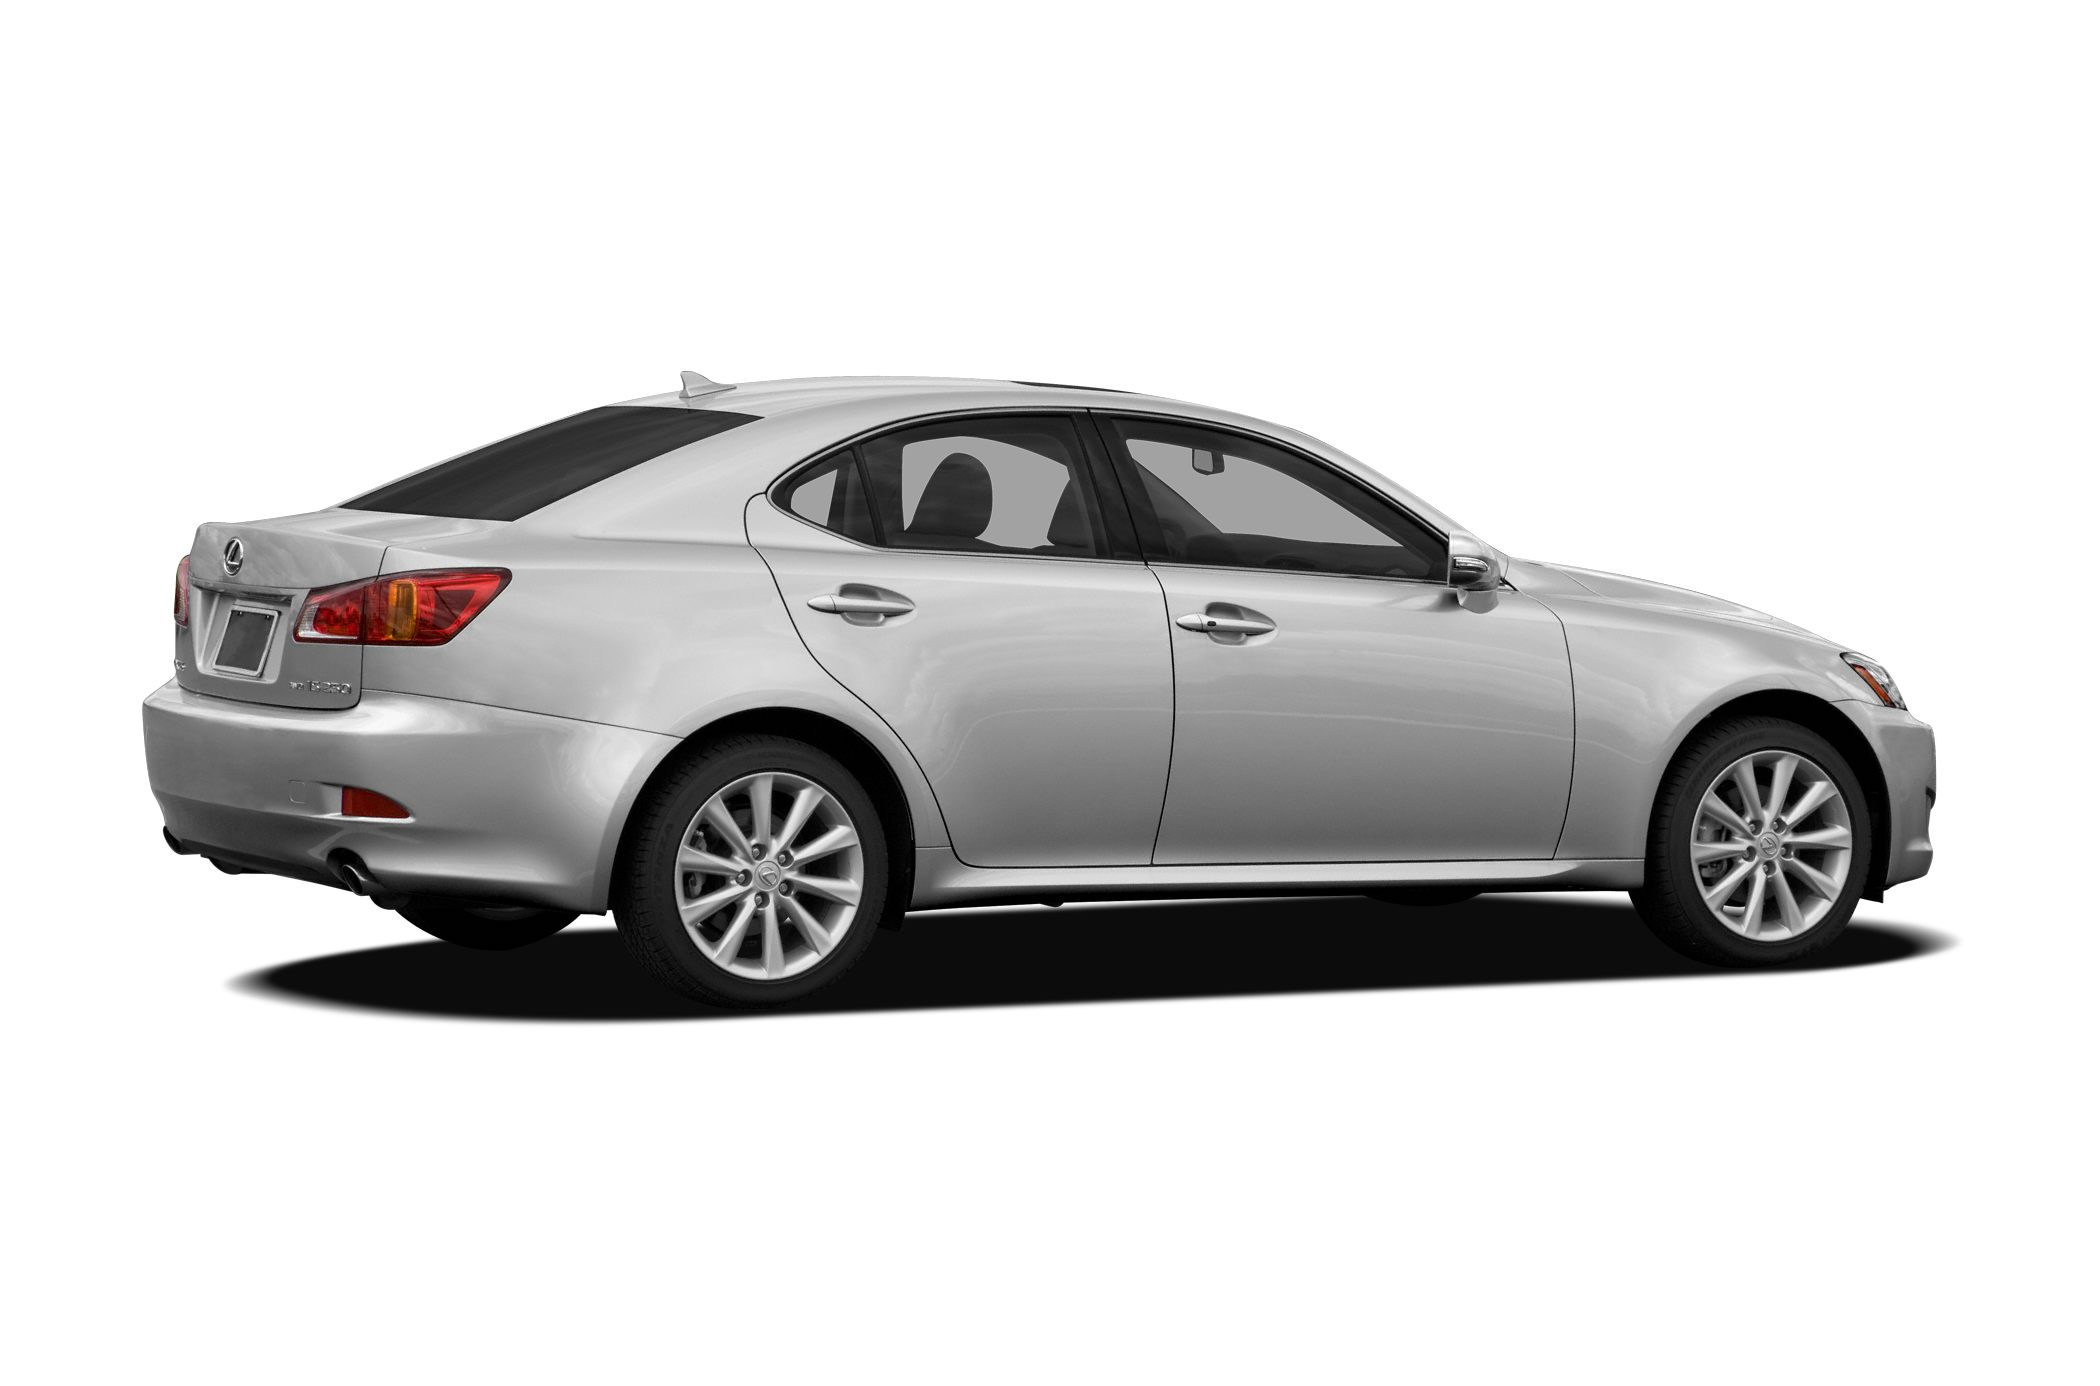 2009 Lexus IS 250 Base AWD White New Price Odometer is 15092 miles below market average 2620 H